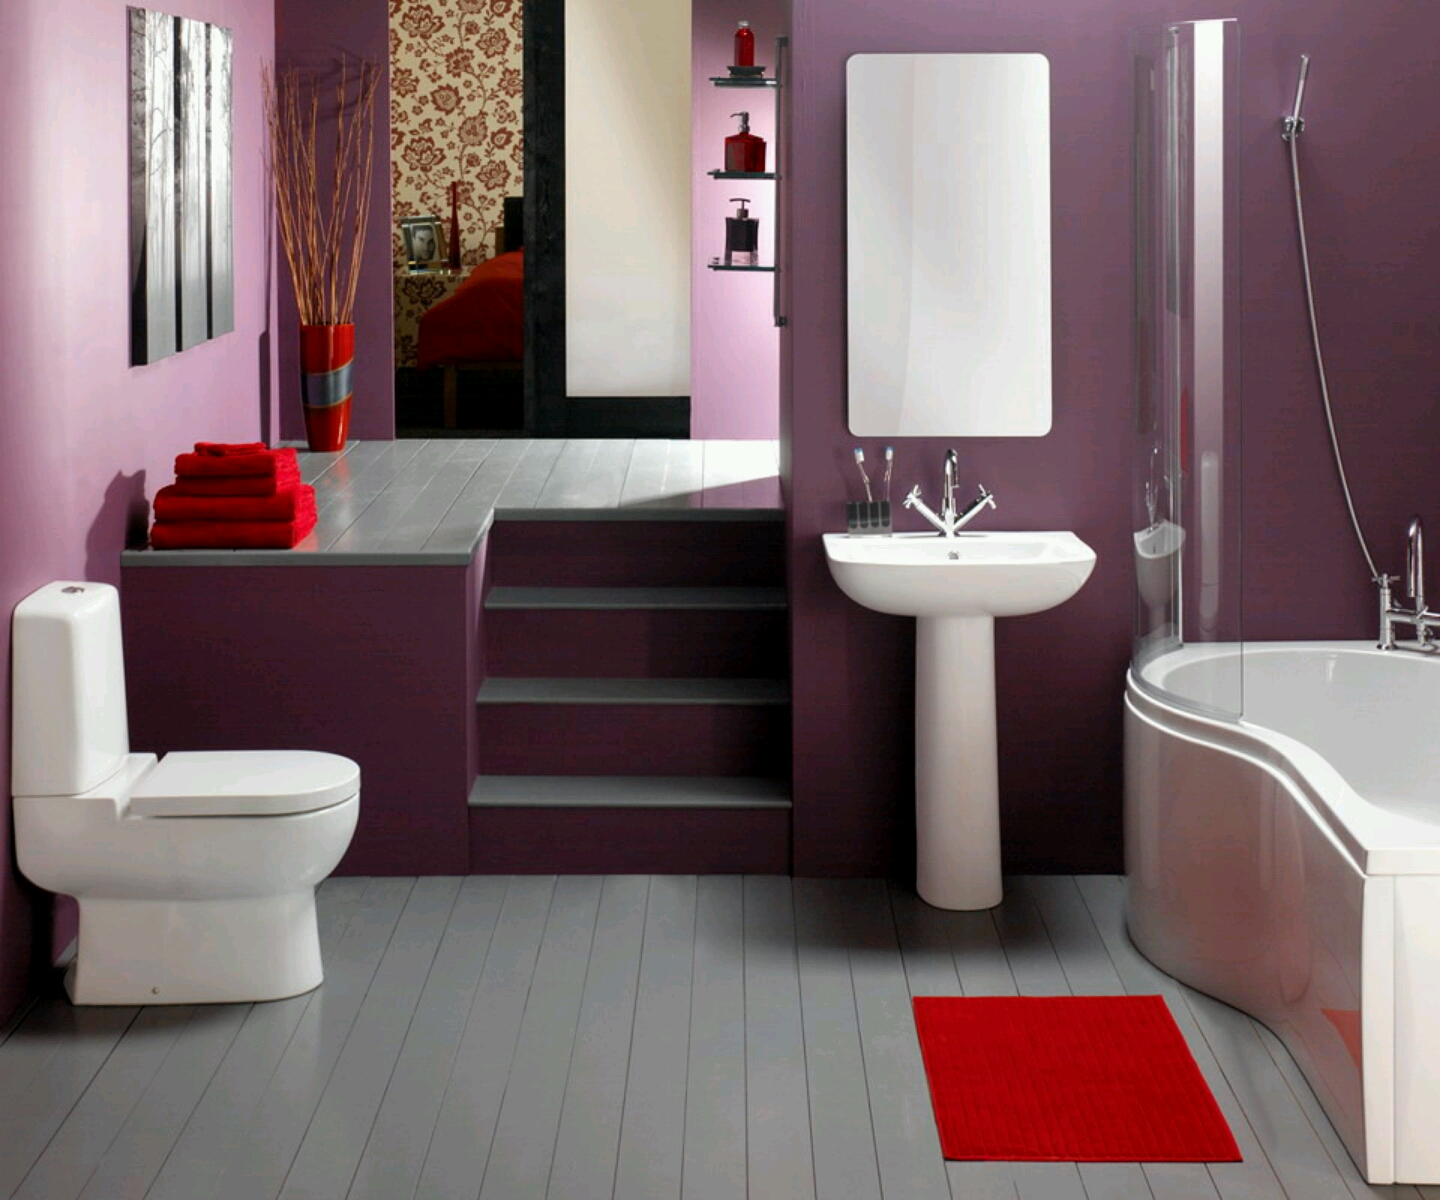 New home designs latest luxury modern bathrooms designs for Bathroom design ideas